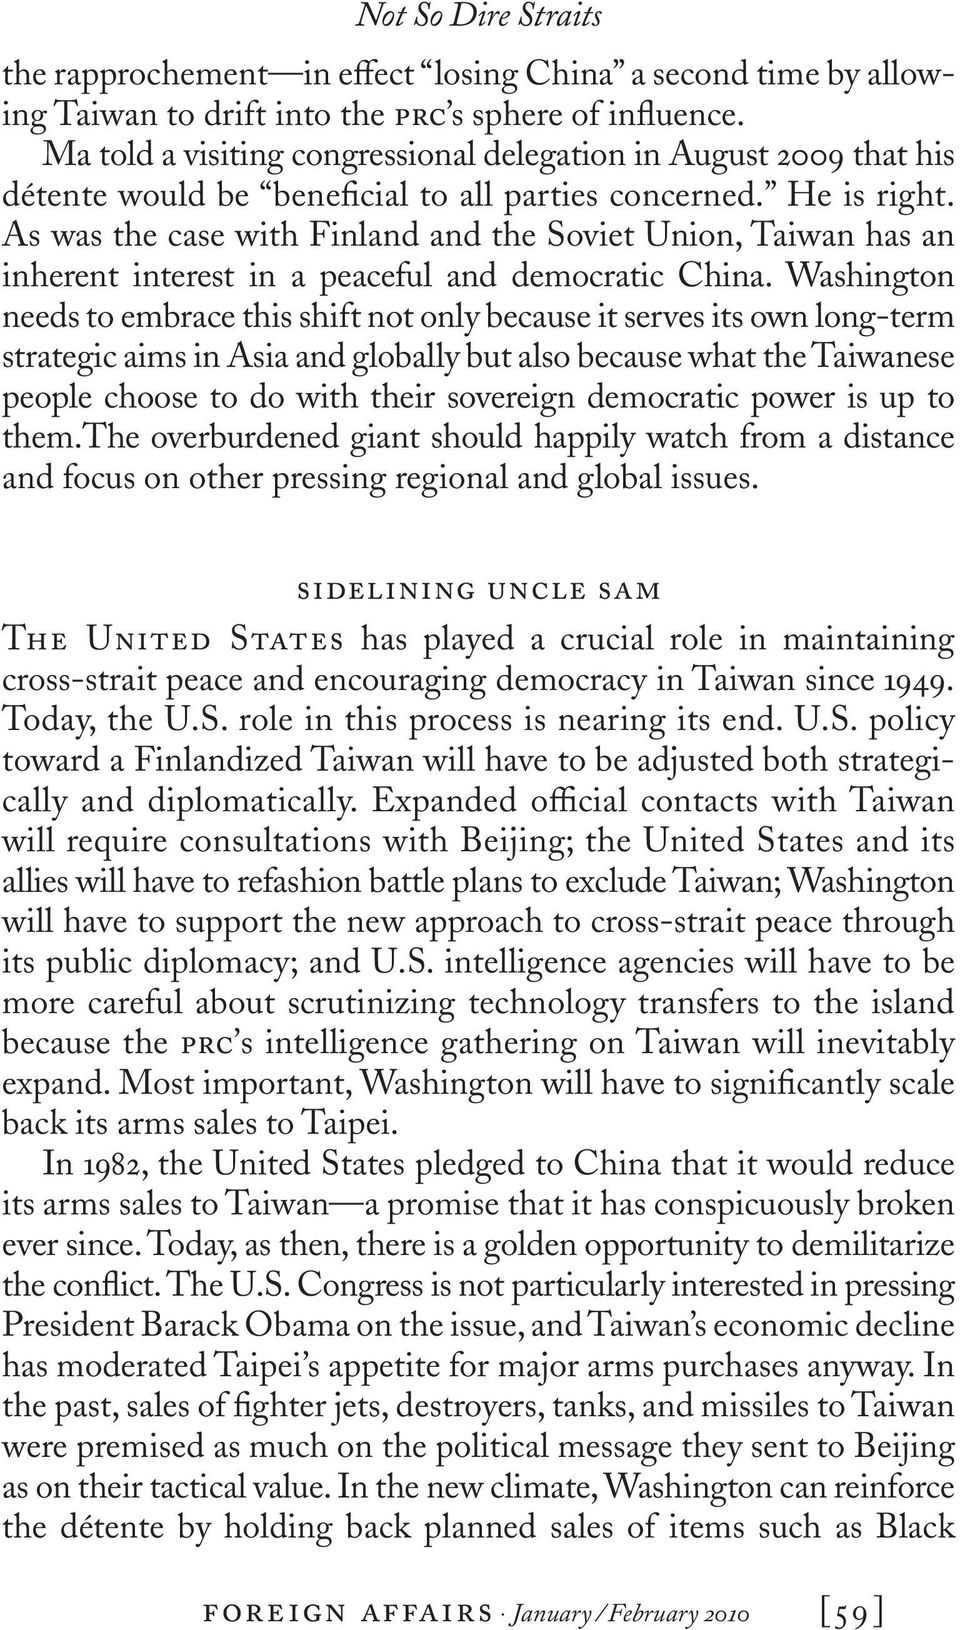 As was the case with Finland and the Soviet Union, Taiwan has an inherent interest in a peaceful and democratic China.